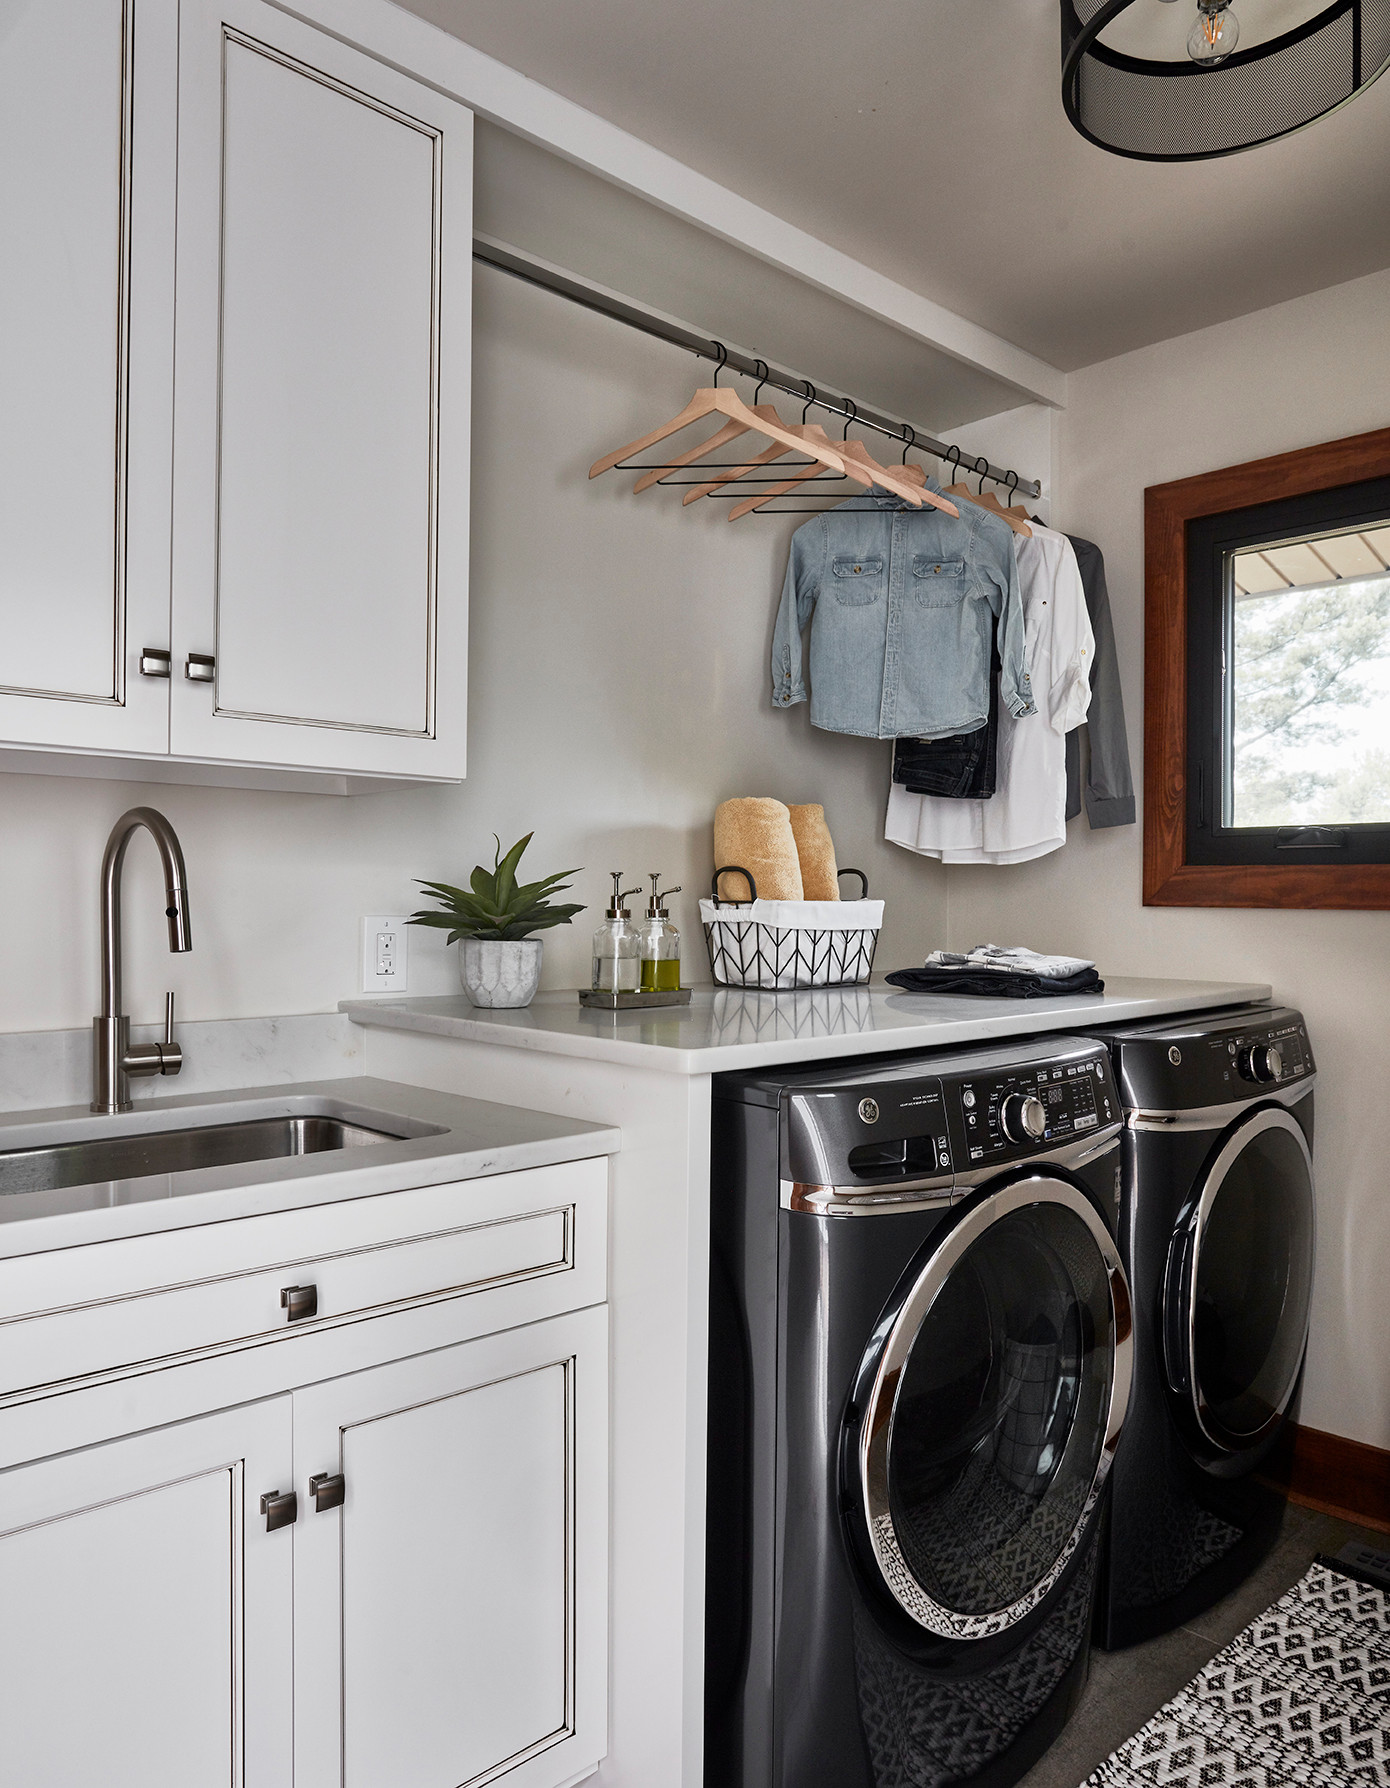 75 Beautiful Rustic Laundry Room Pictures Ideas December 2020 Houzz